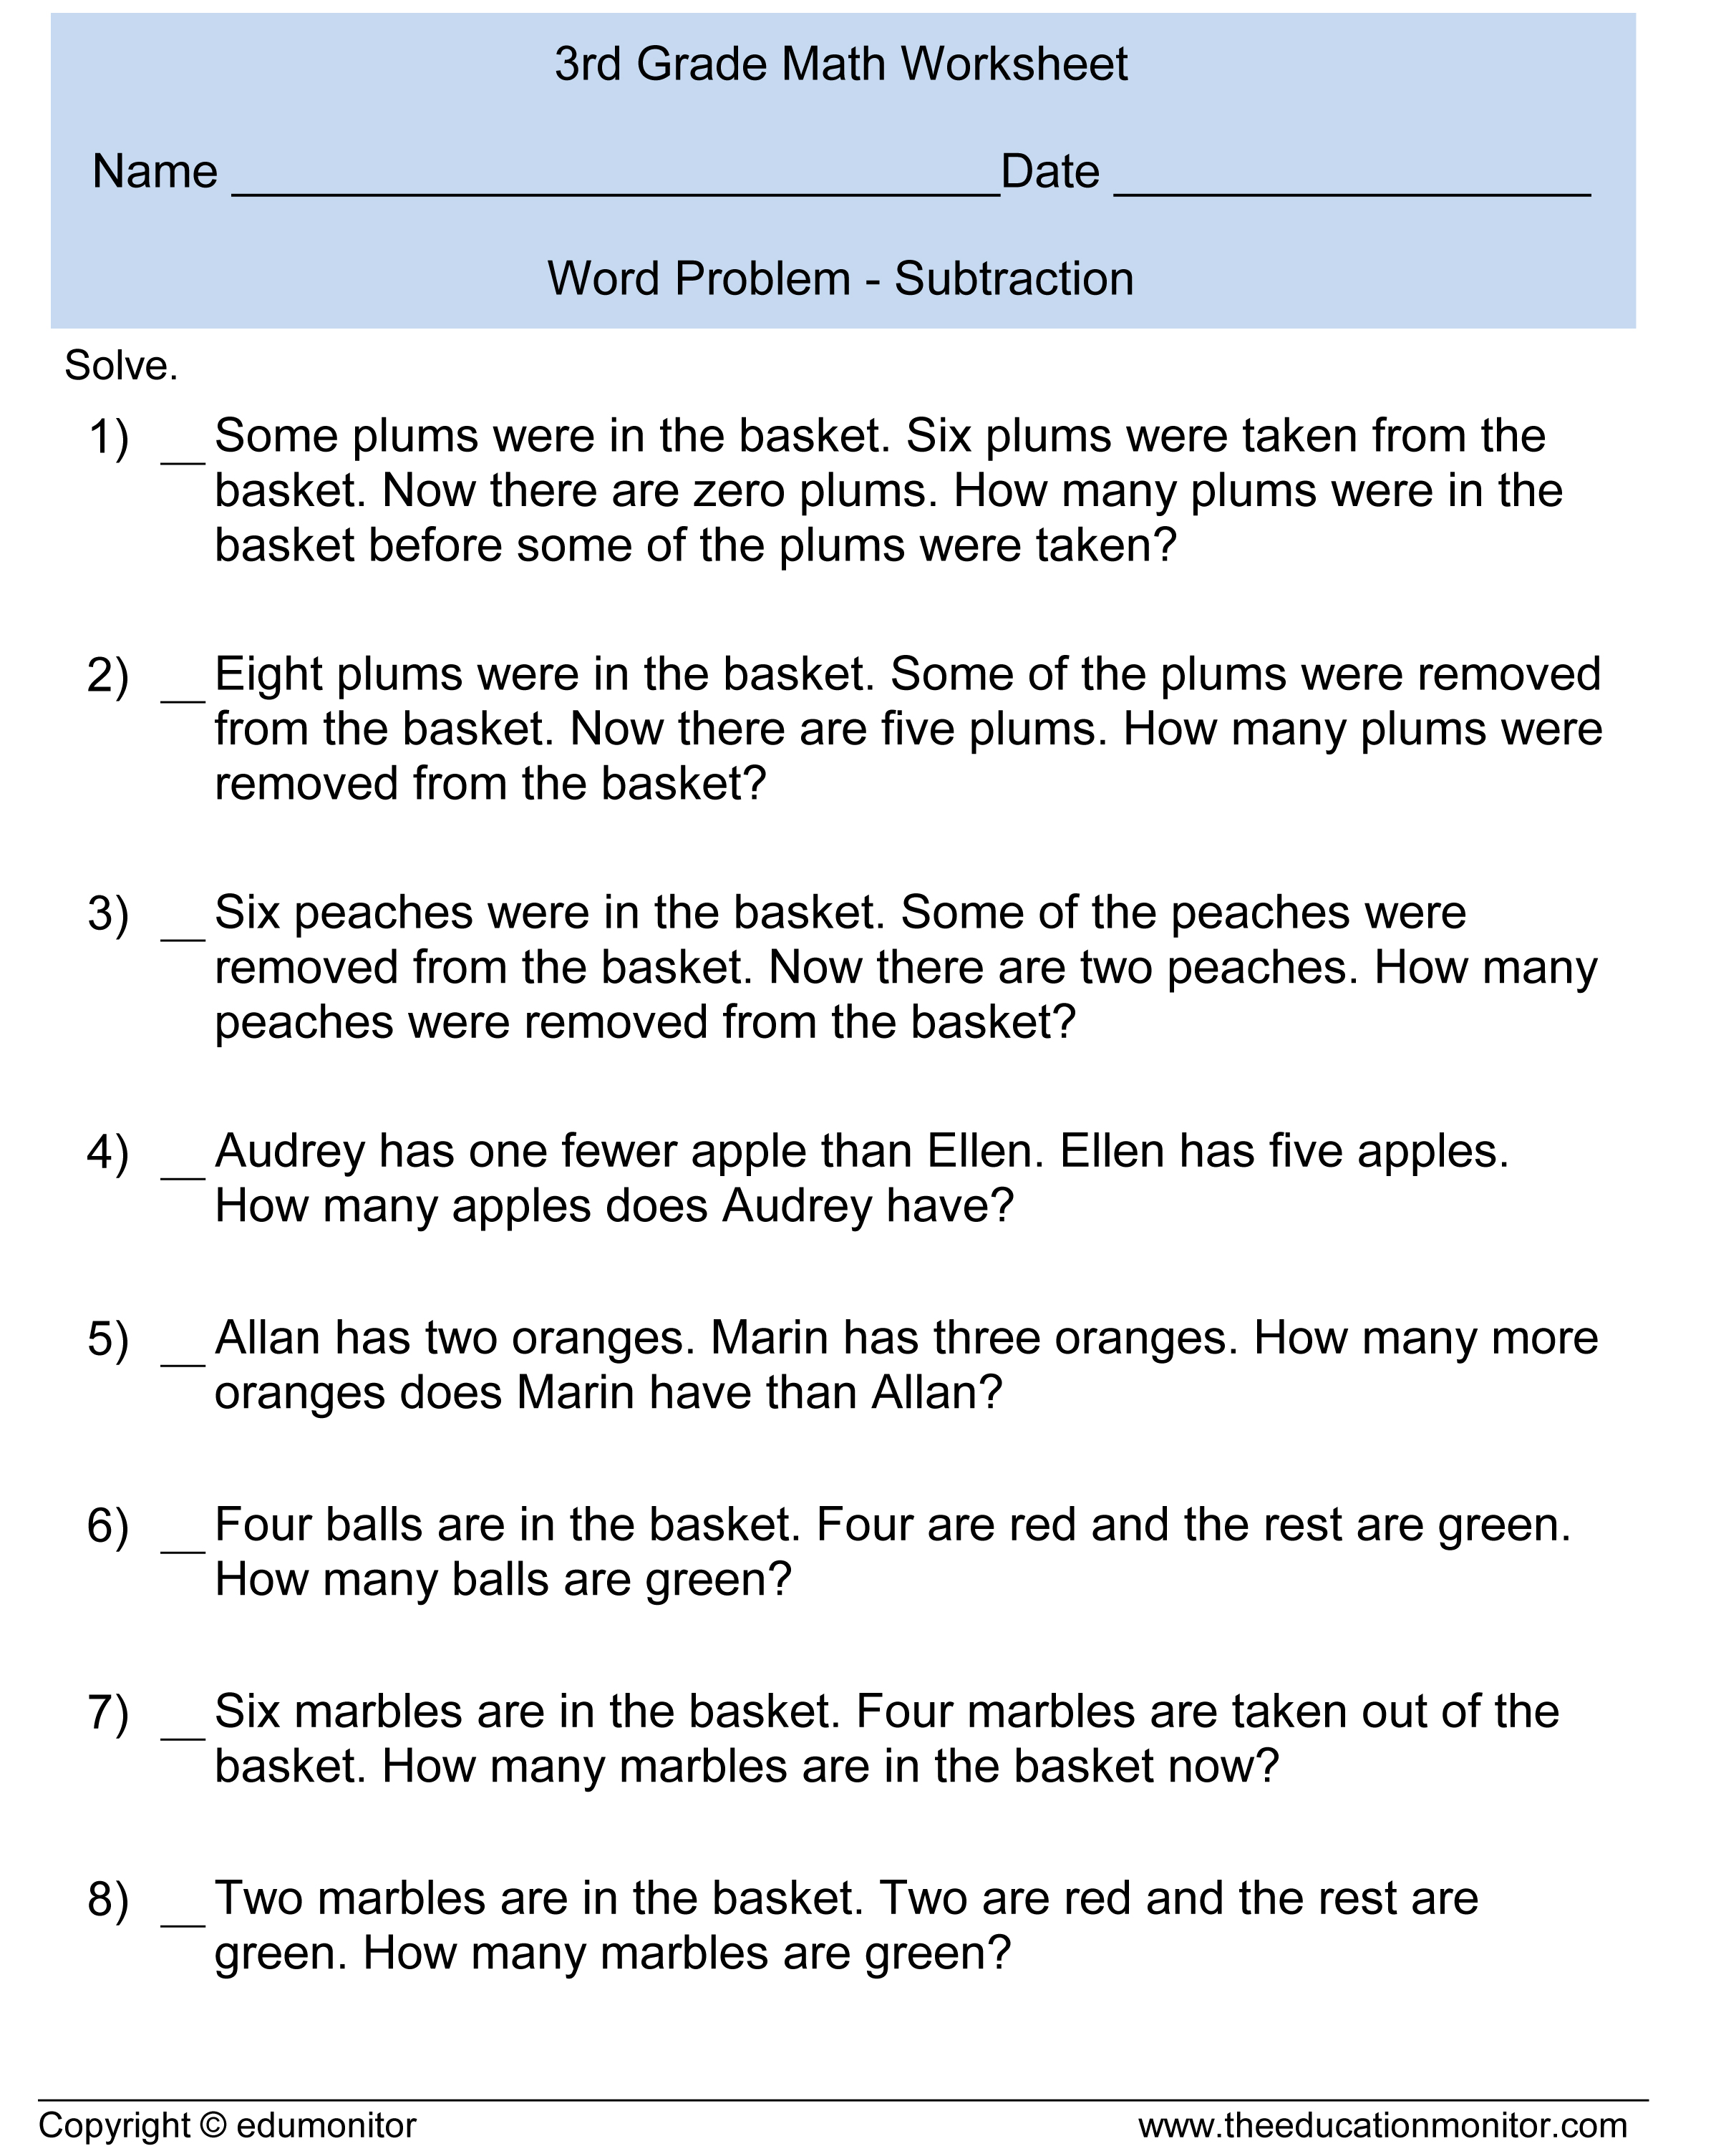 Worksheet Subtraction Problems For 3rd Grade third grade subtraction word problems3rd math document